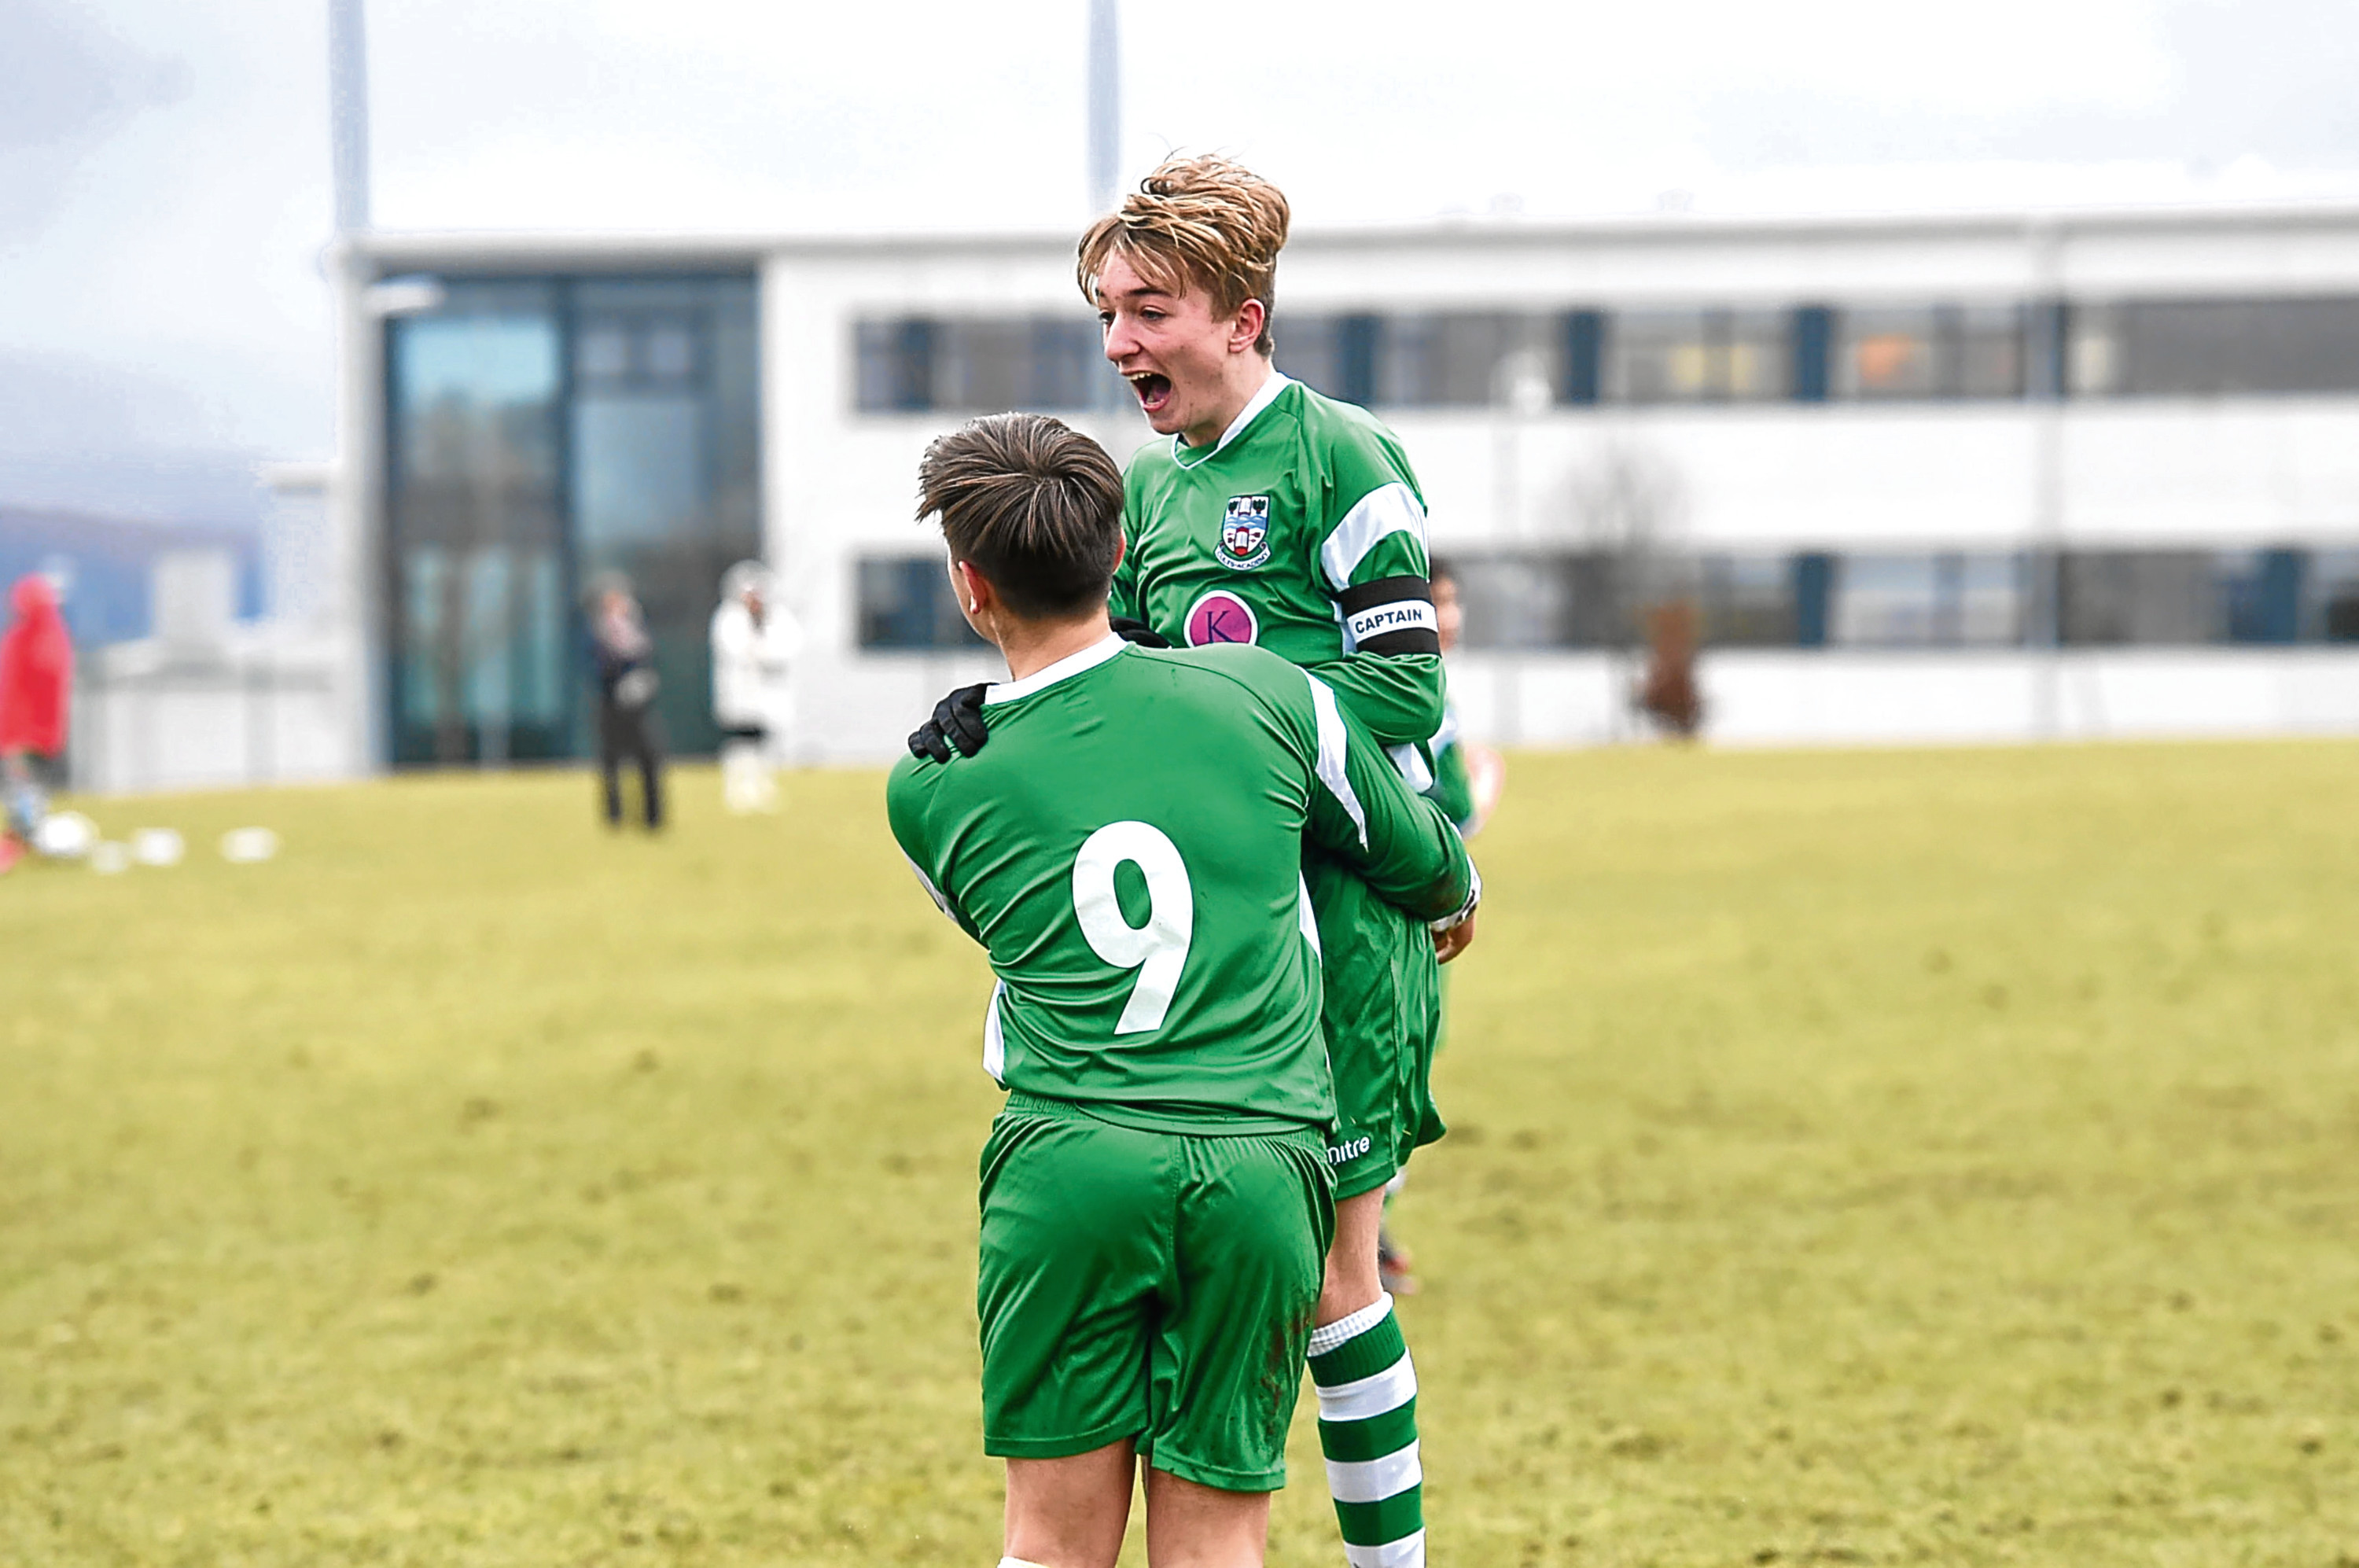 Pictured is Cults' Lewis Macdonald, 9, left, celebrating after scoring the opening goal of the game with captain Jordan Lynch. Picture by Darrell Benns